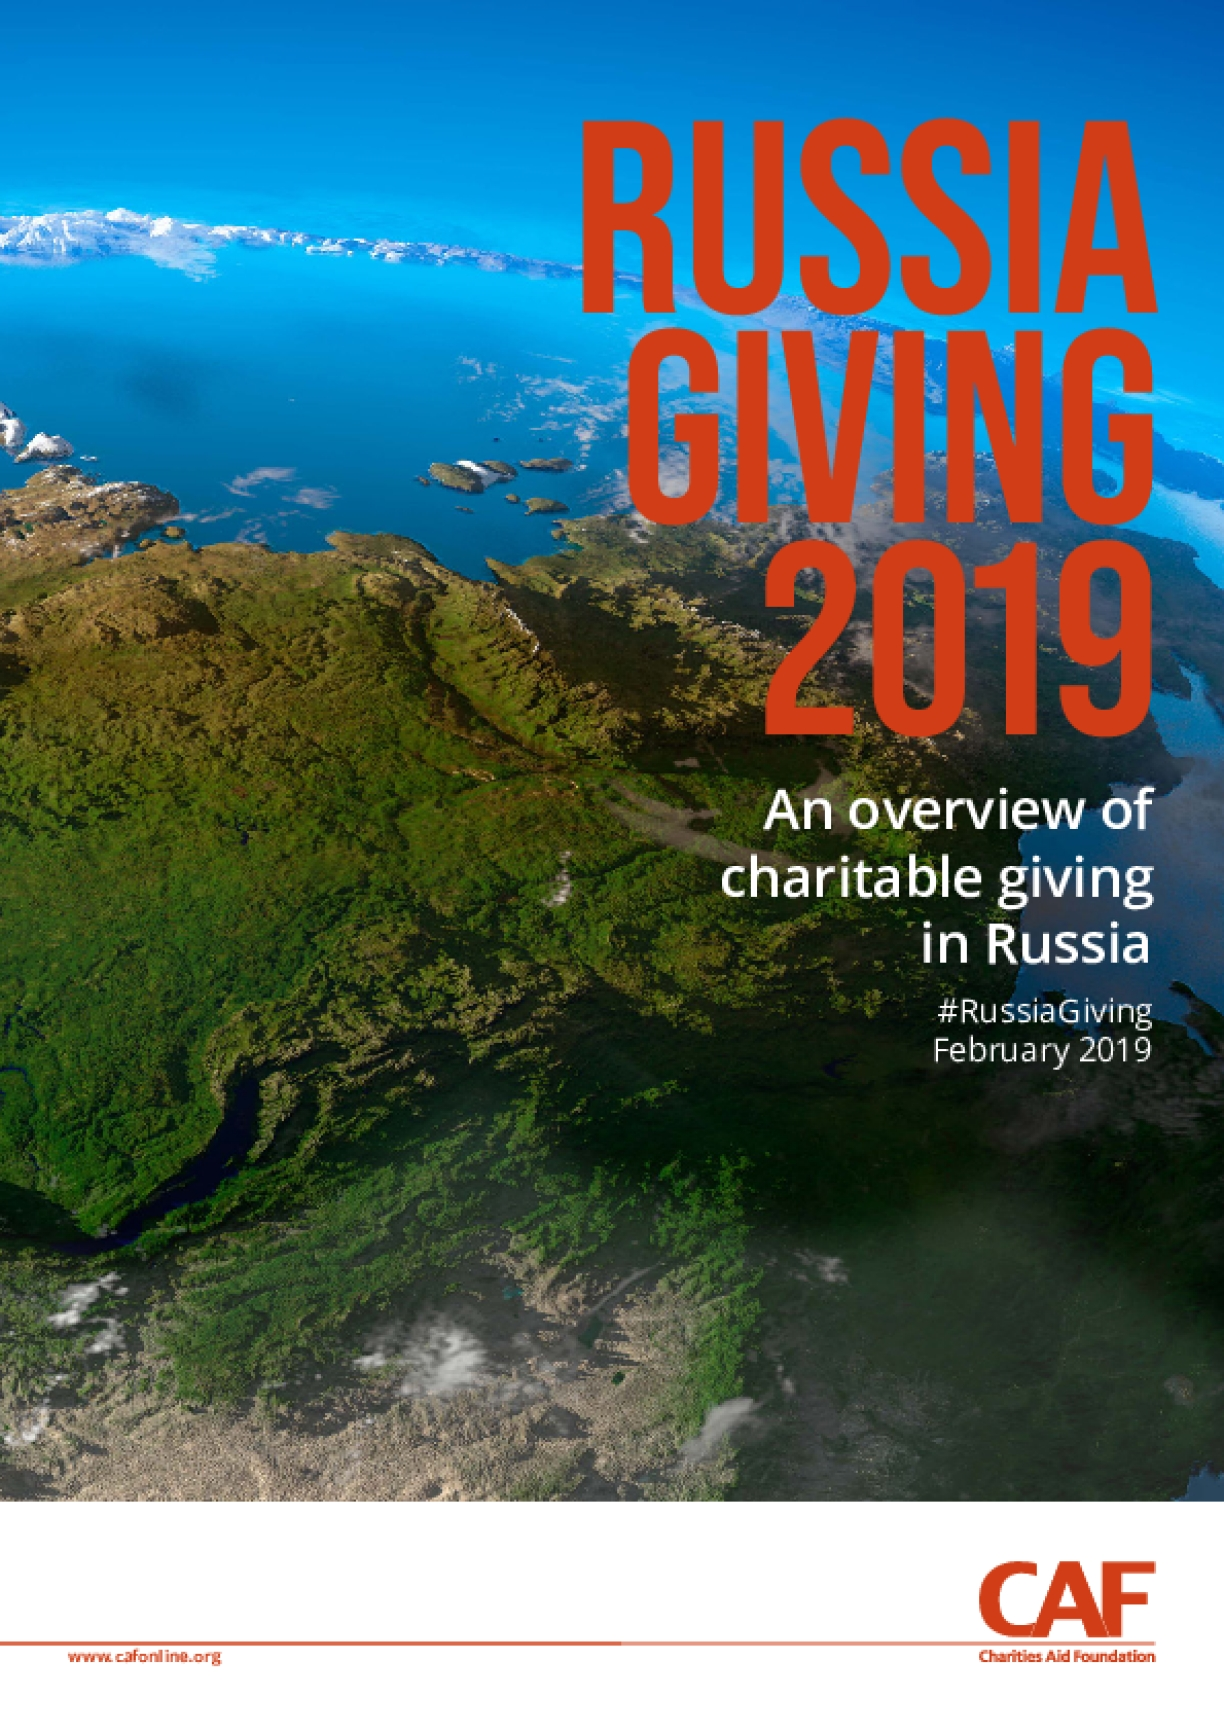 Russia Giving 2019 : An Overview of Charitable Giving in Russia